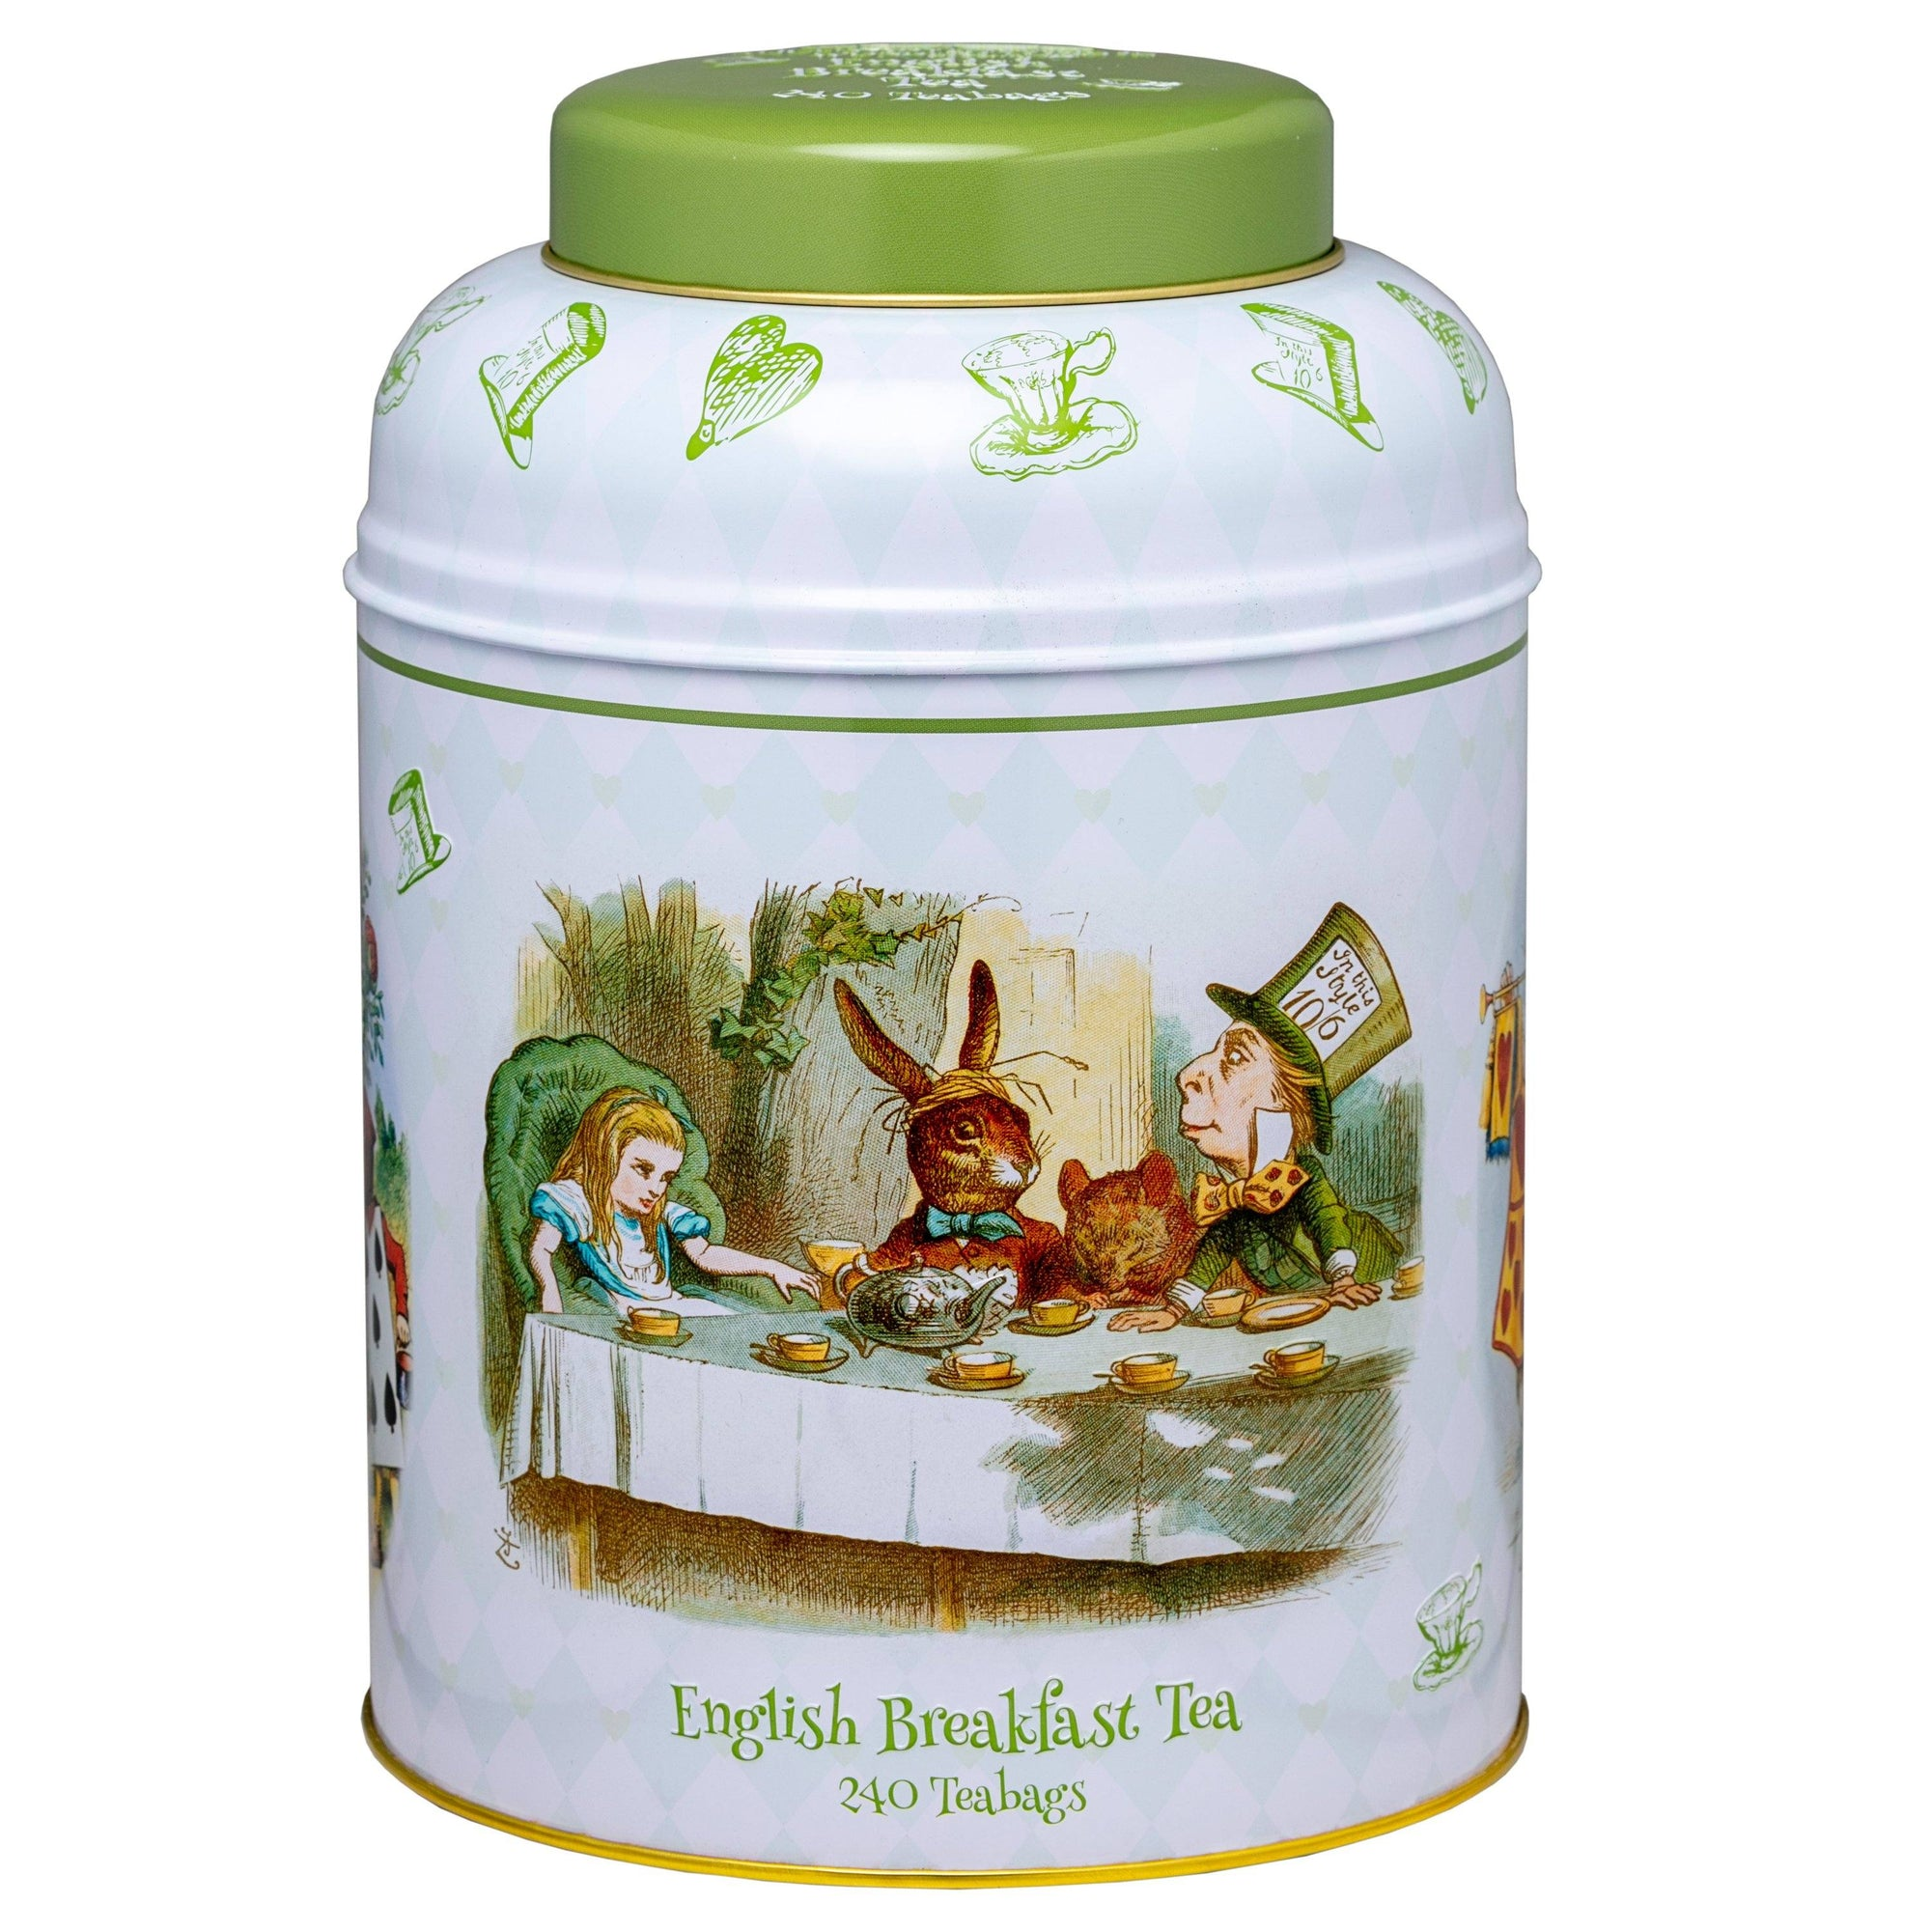 Alice in Wonderland Caddy with 240 English Breakfast Teabags Black Tea New English Teas